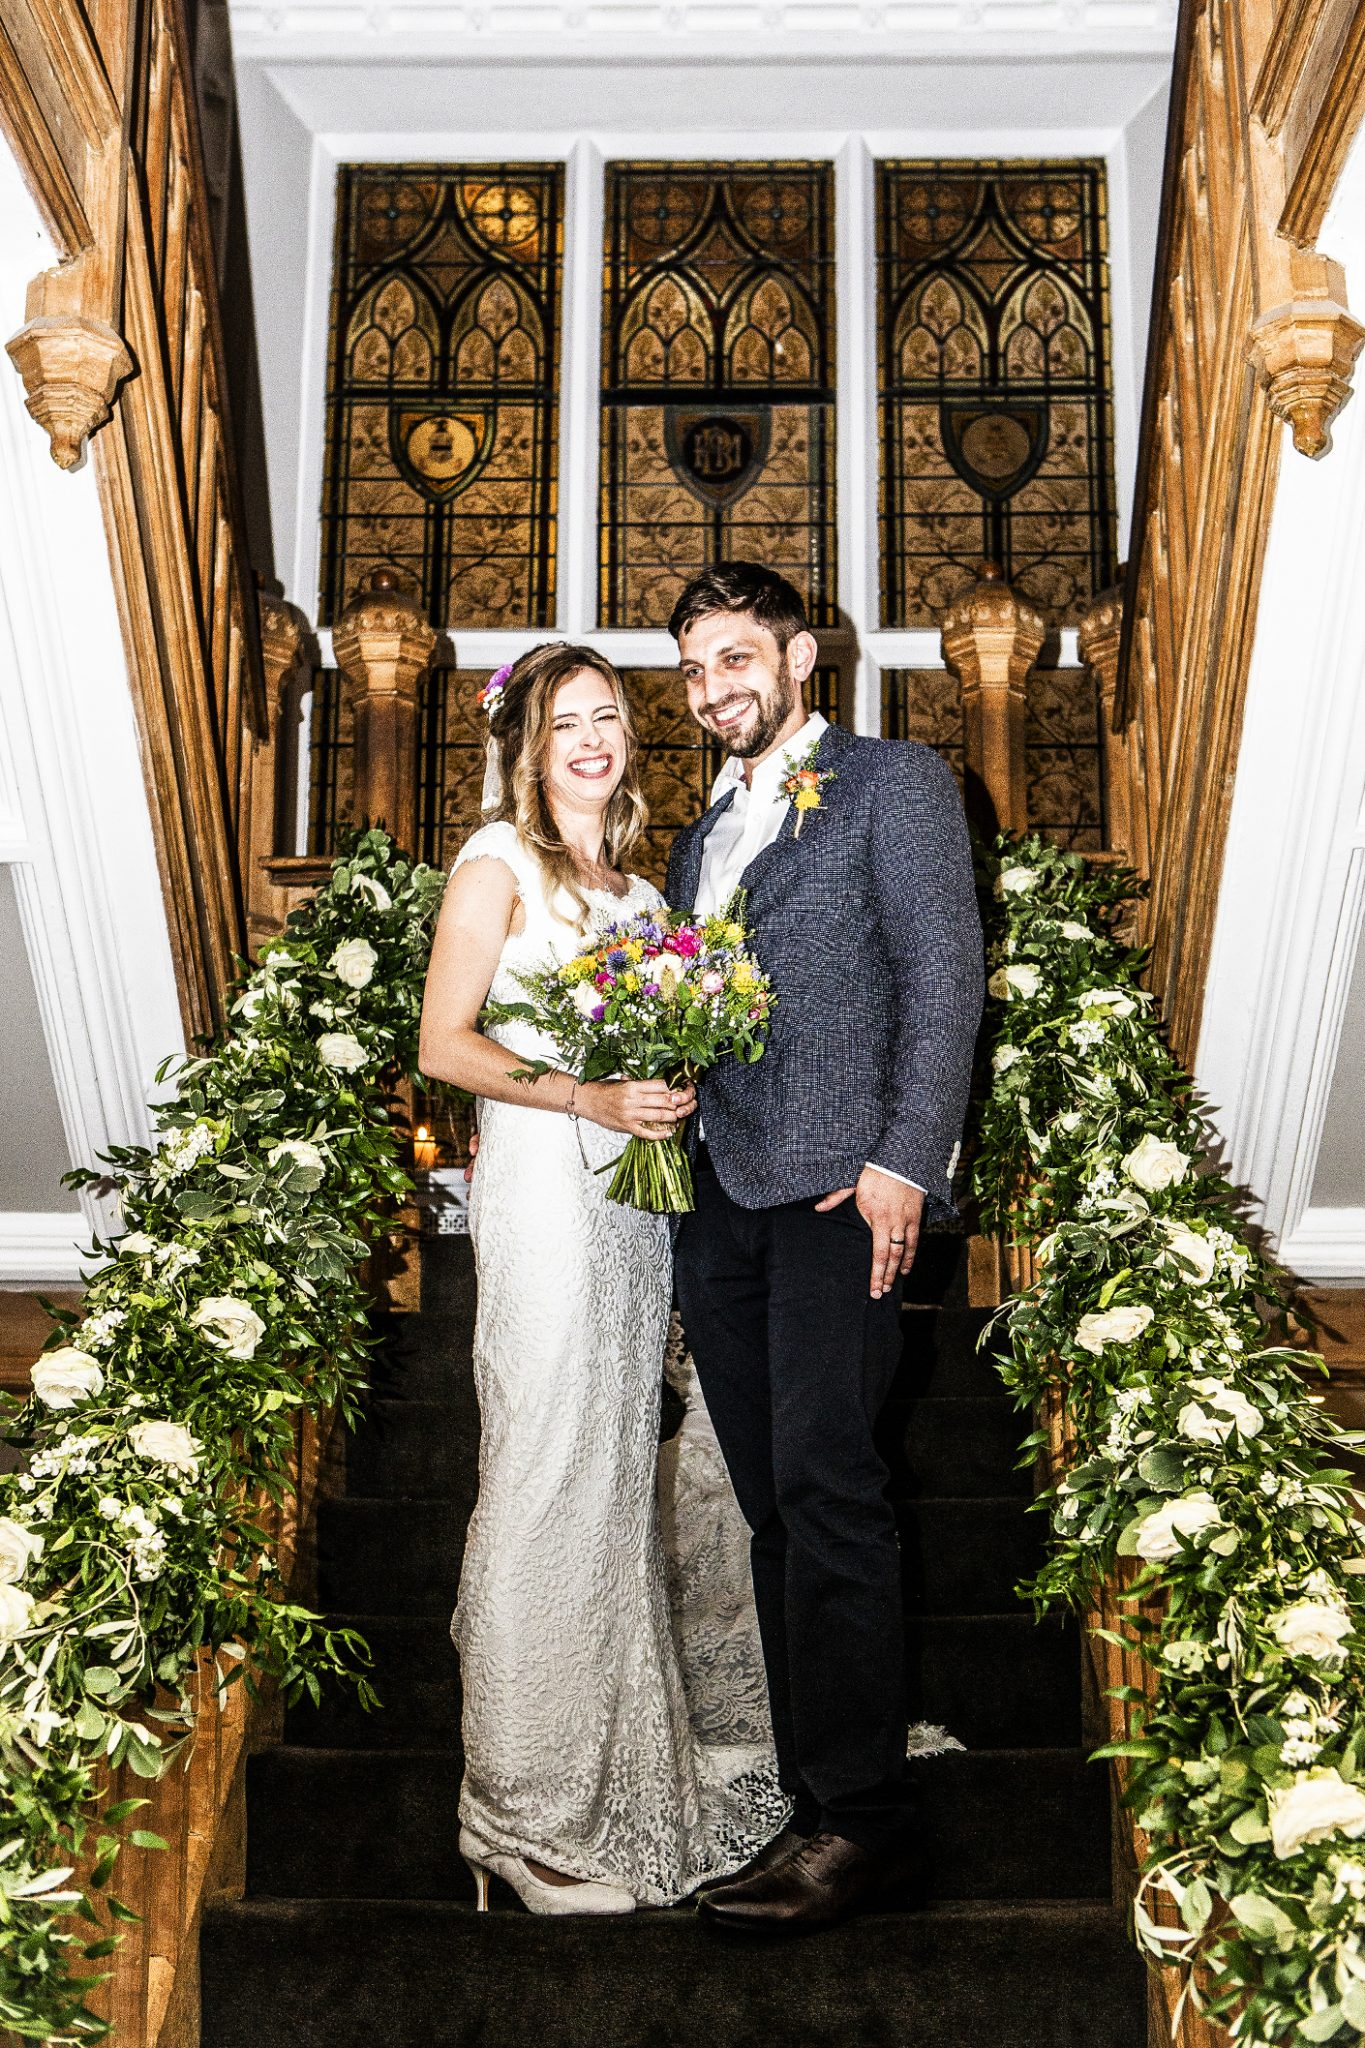 photography-of-the-bride-and-groom-after-the-wedding-ceremony-in-didsbury-house-hotel-manchester